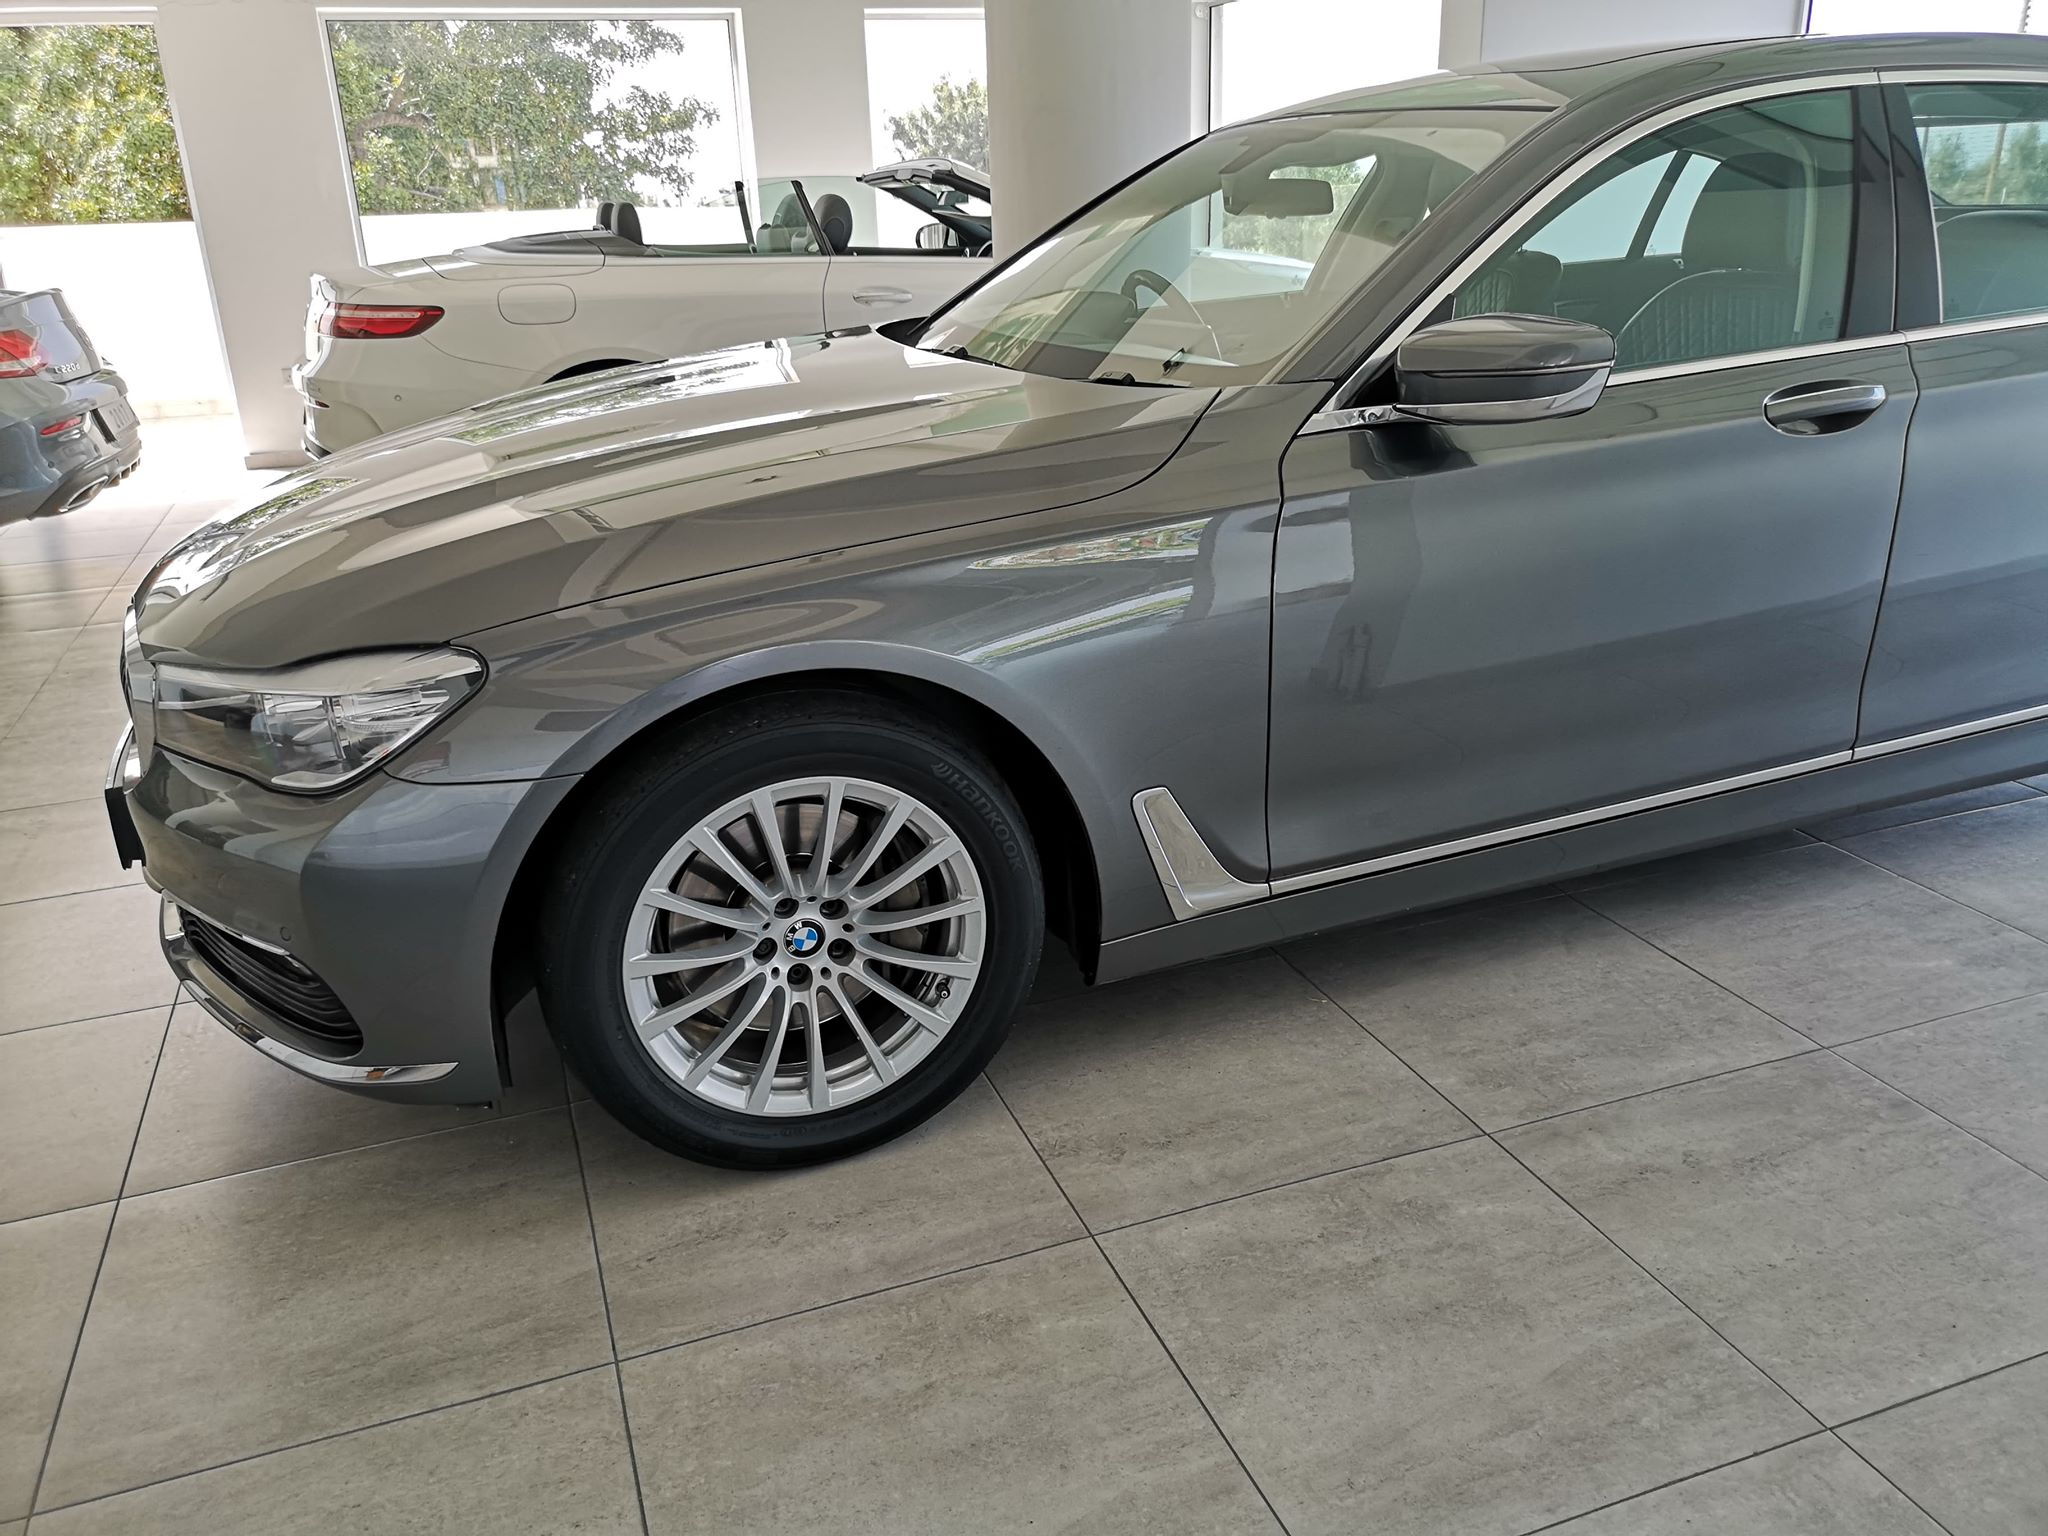 BMW 740 LONG HYBRID ELECTRIC 3.0LTRS PETROL